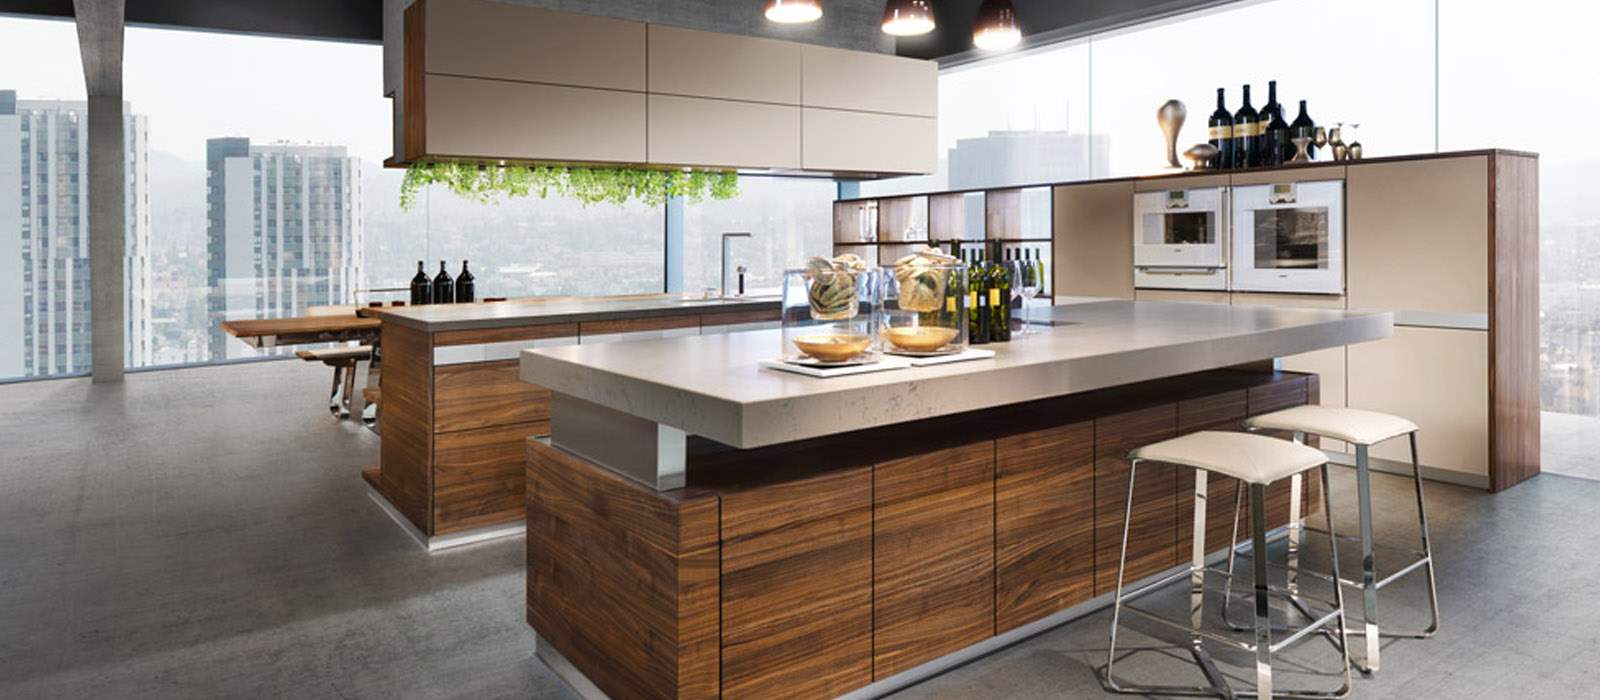 German kitchens Kitchen design centre stanway